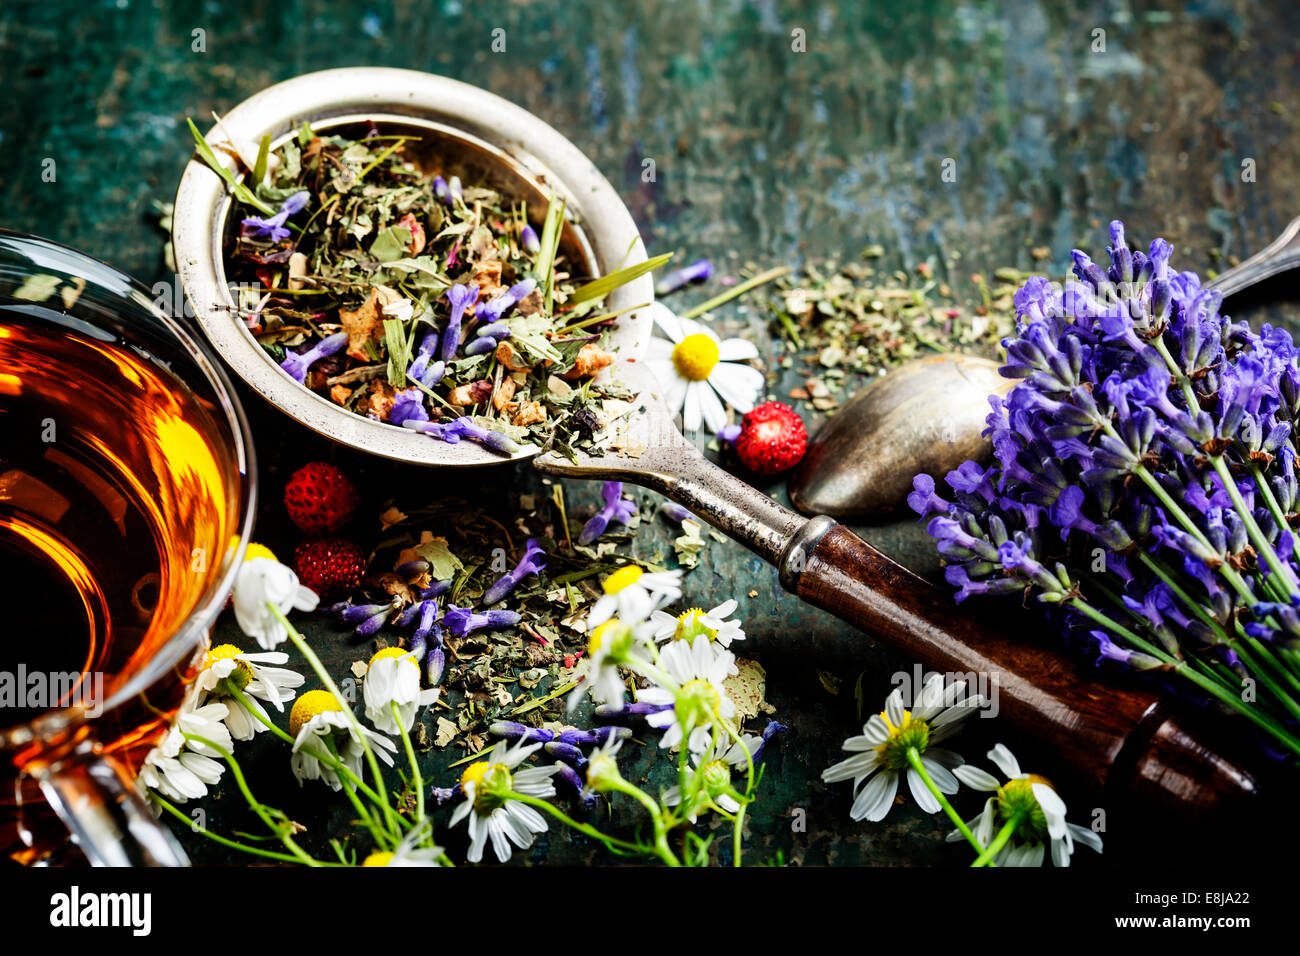 Herbal tea with wild flowers and berry on wooden background - bio food, health and diet concept - Stock Image